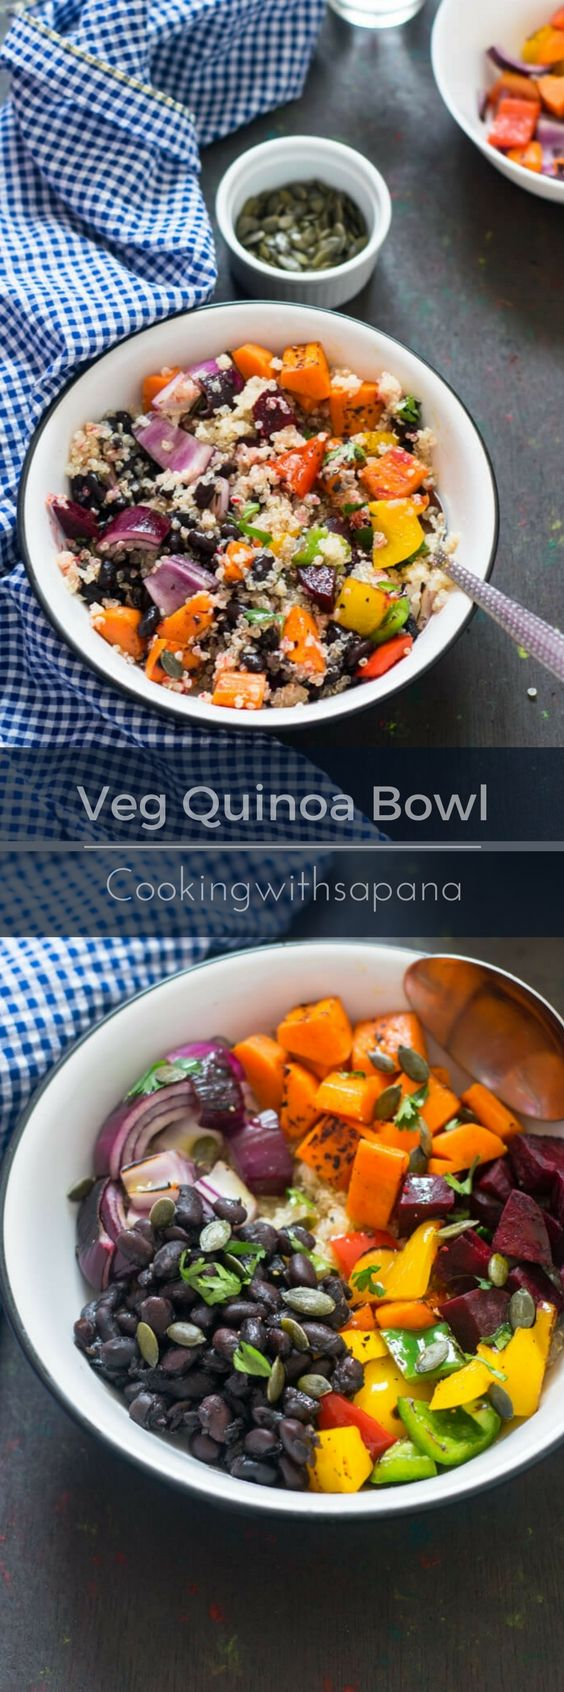 Roasted Vegetable Quinoa Bowl - CookingWithSapana